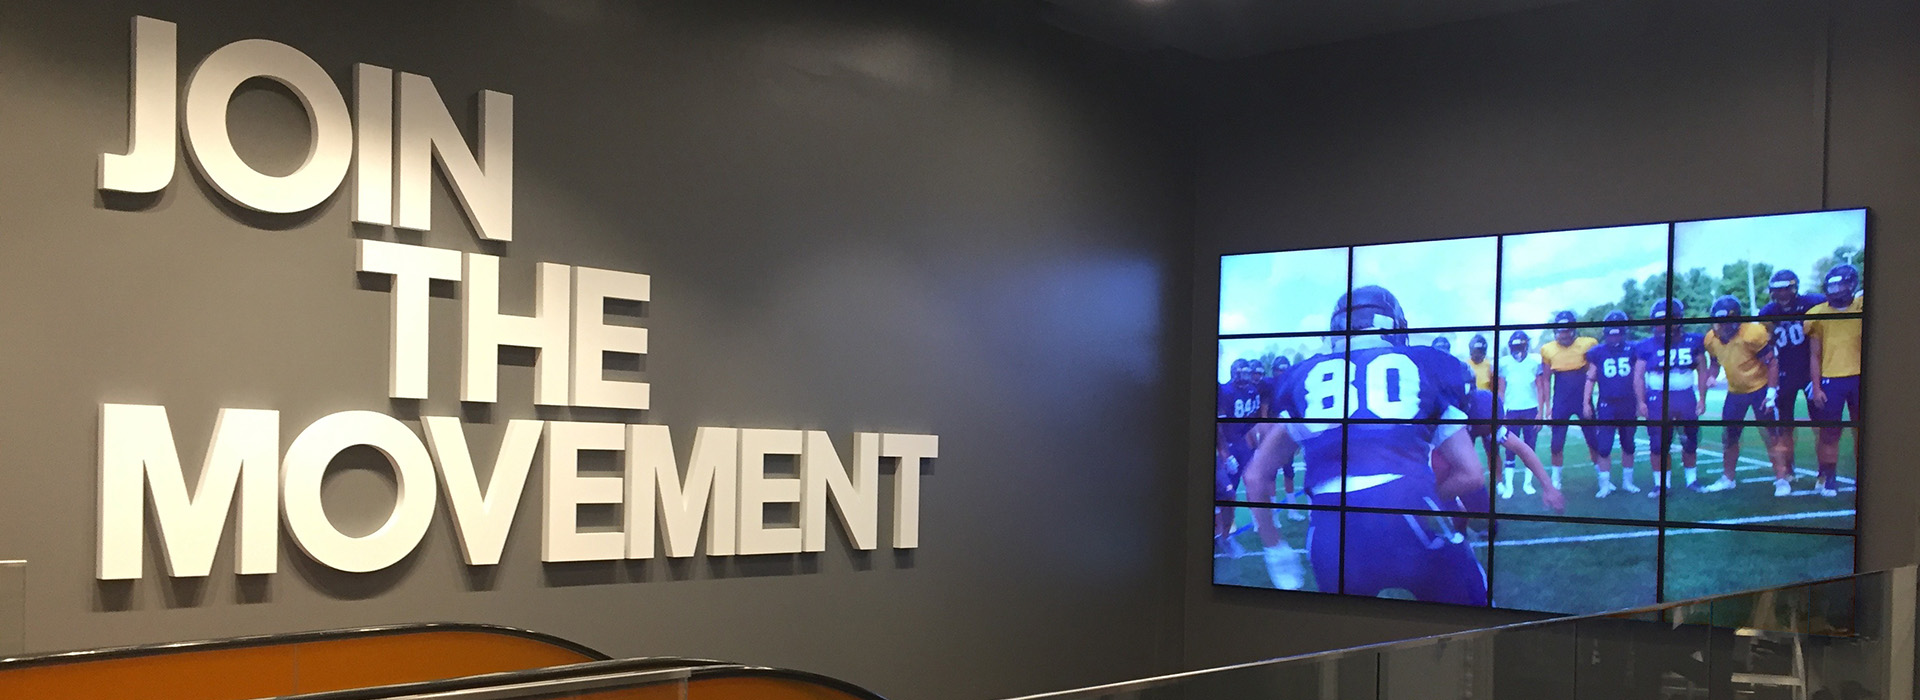 Stadium wall with powerstatement- join the movement